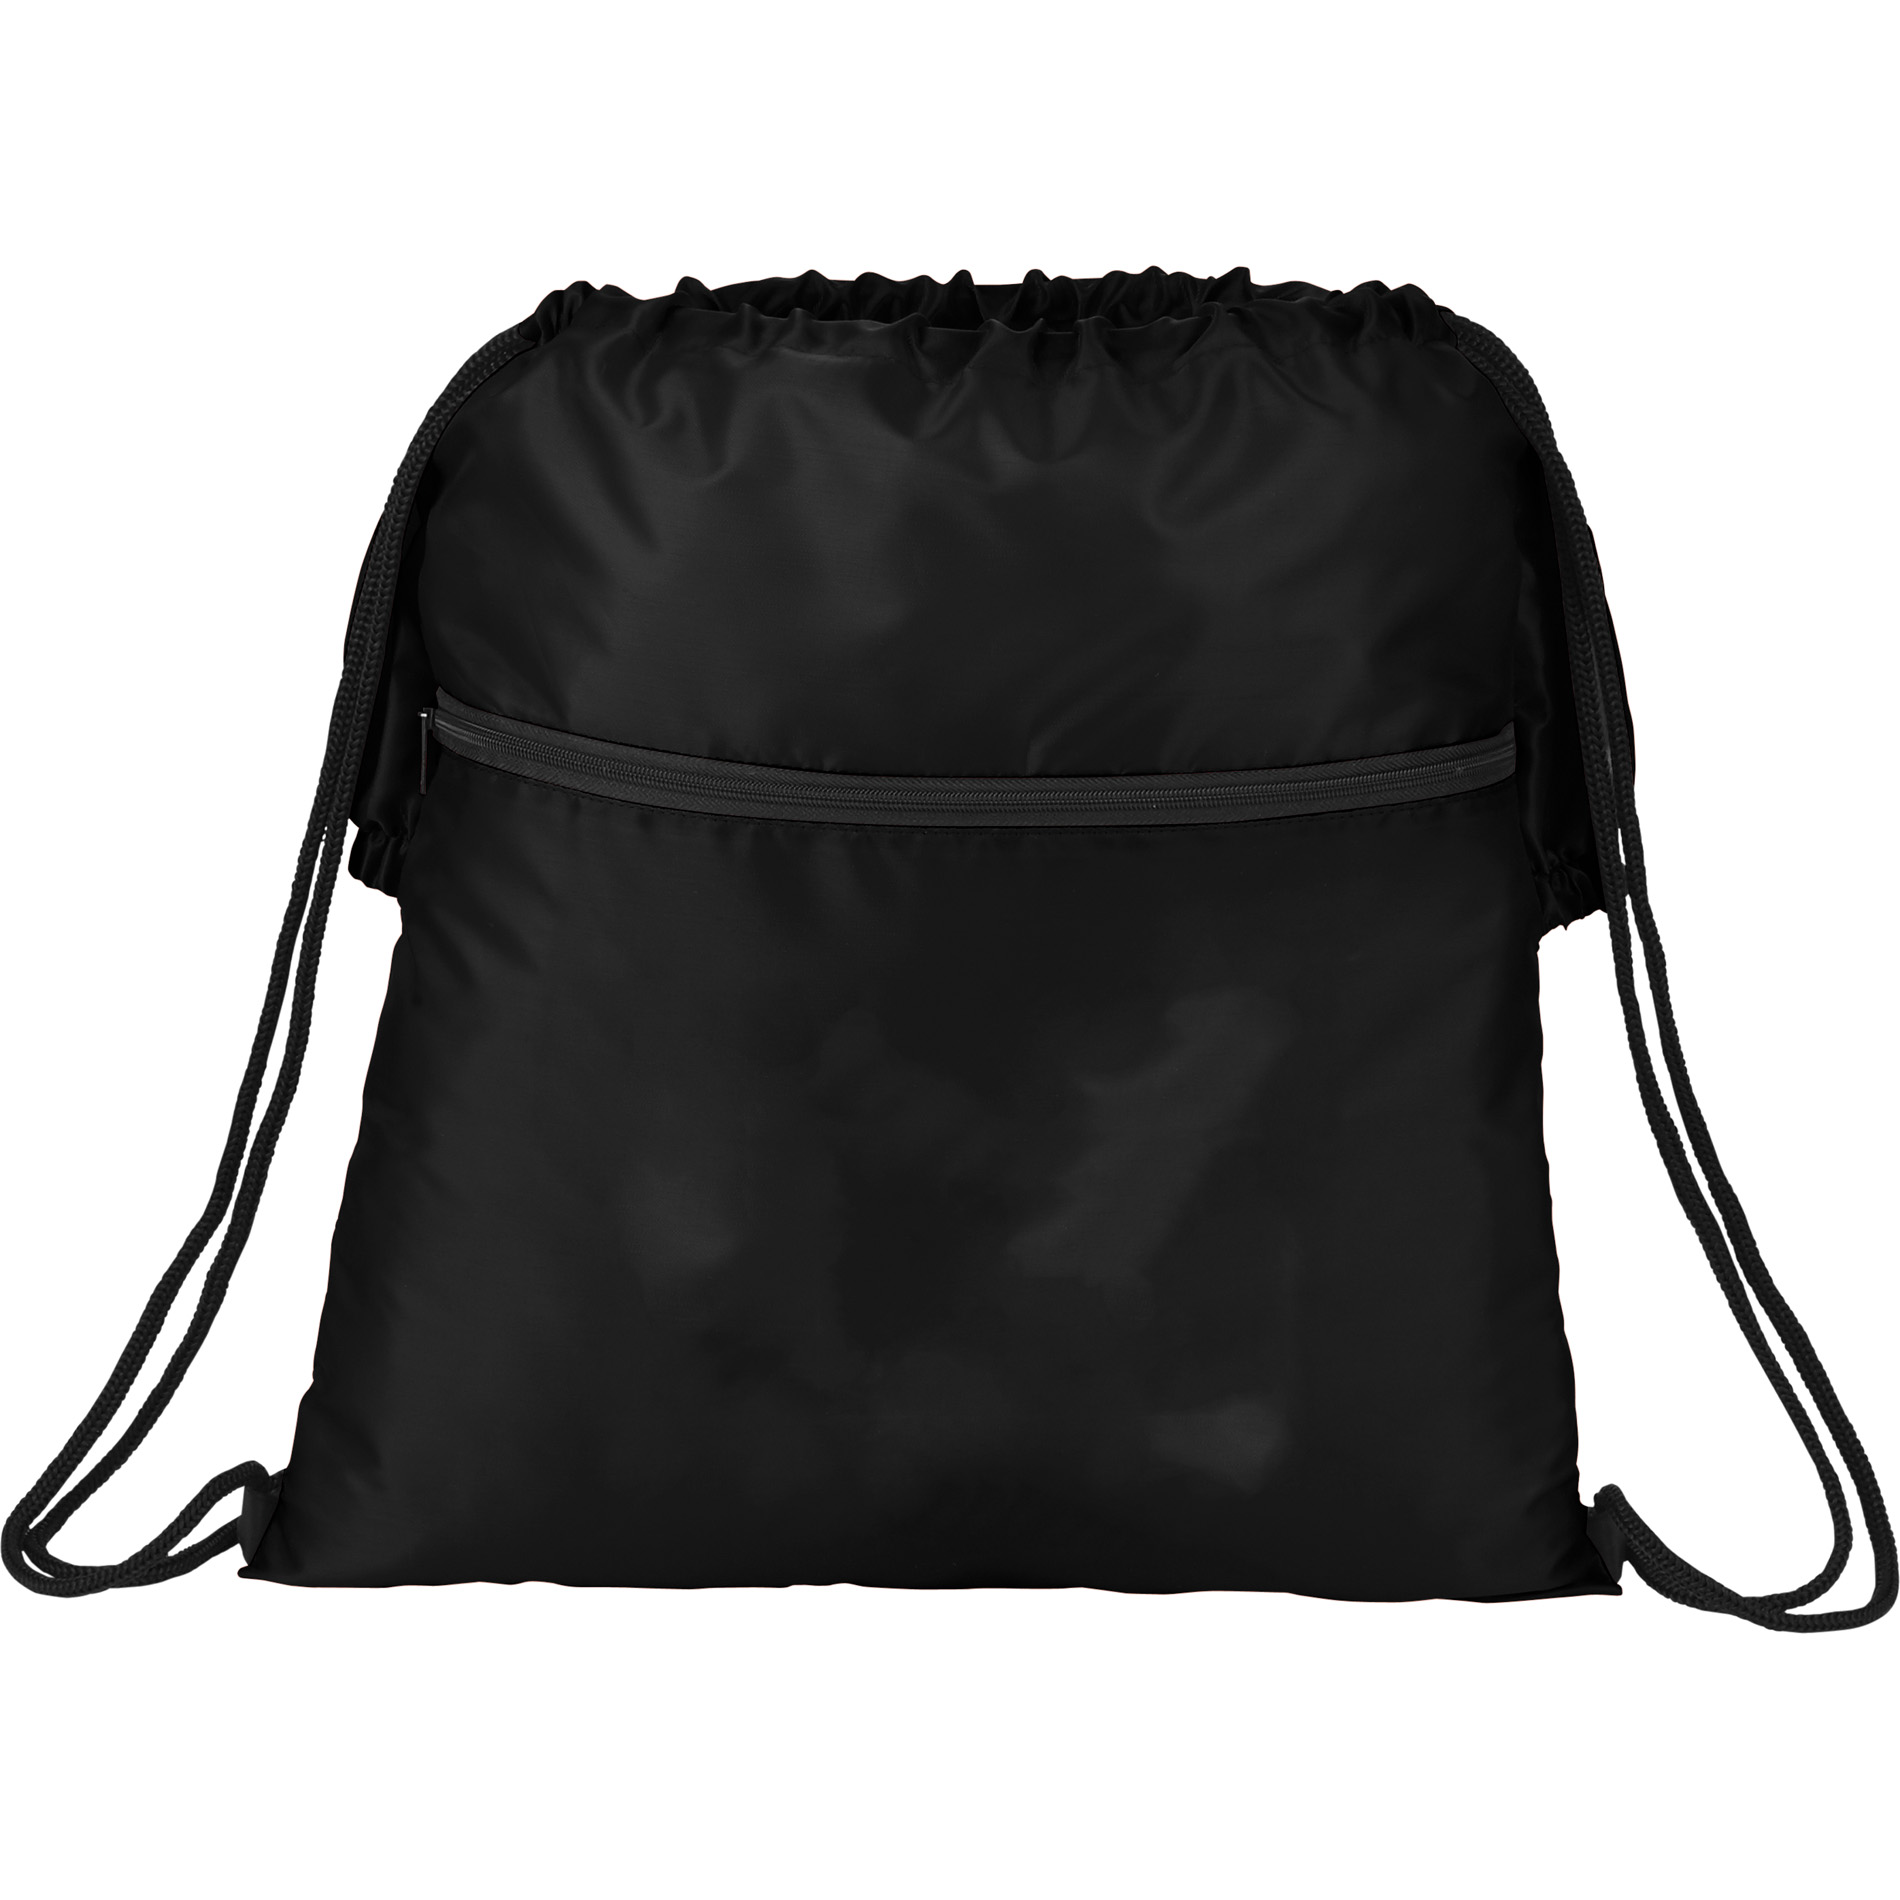 BackSac 3005-32 - Deluxe Drawstring Sportspack